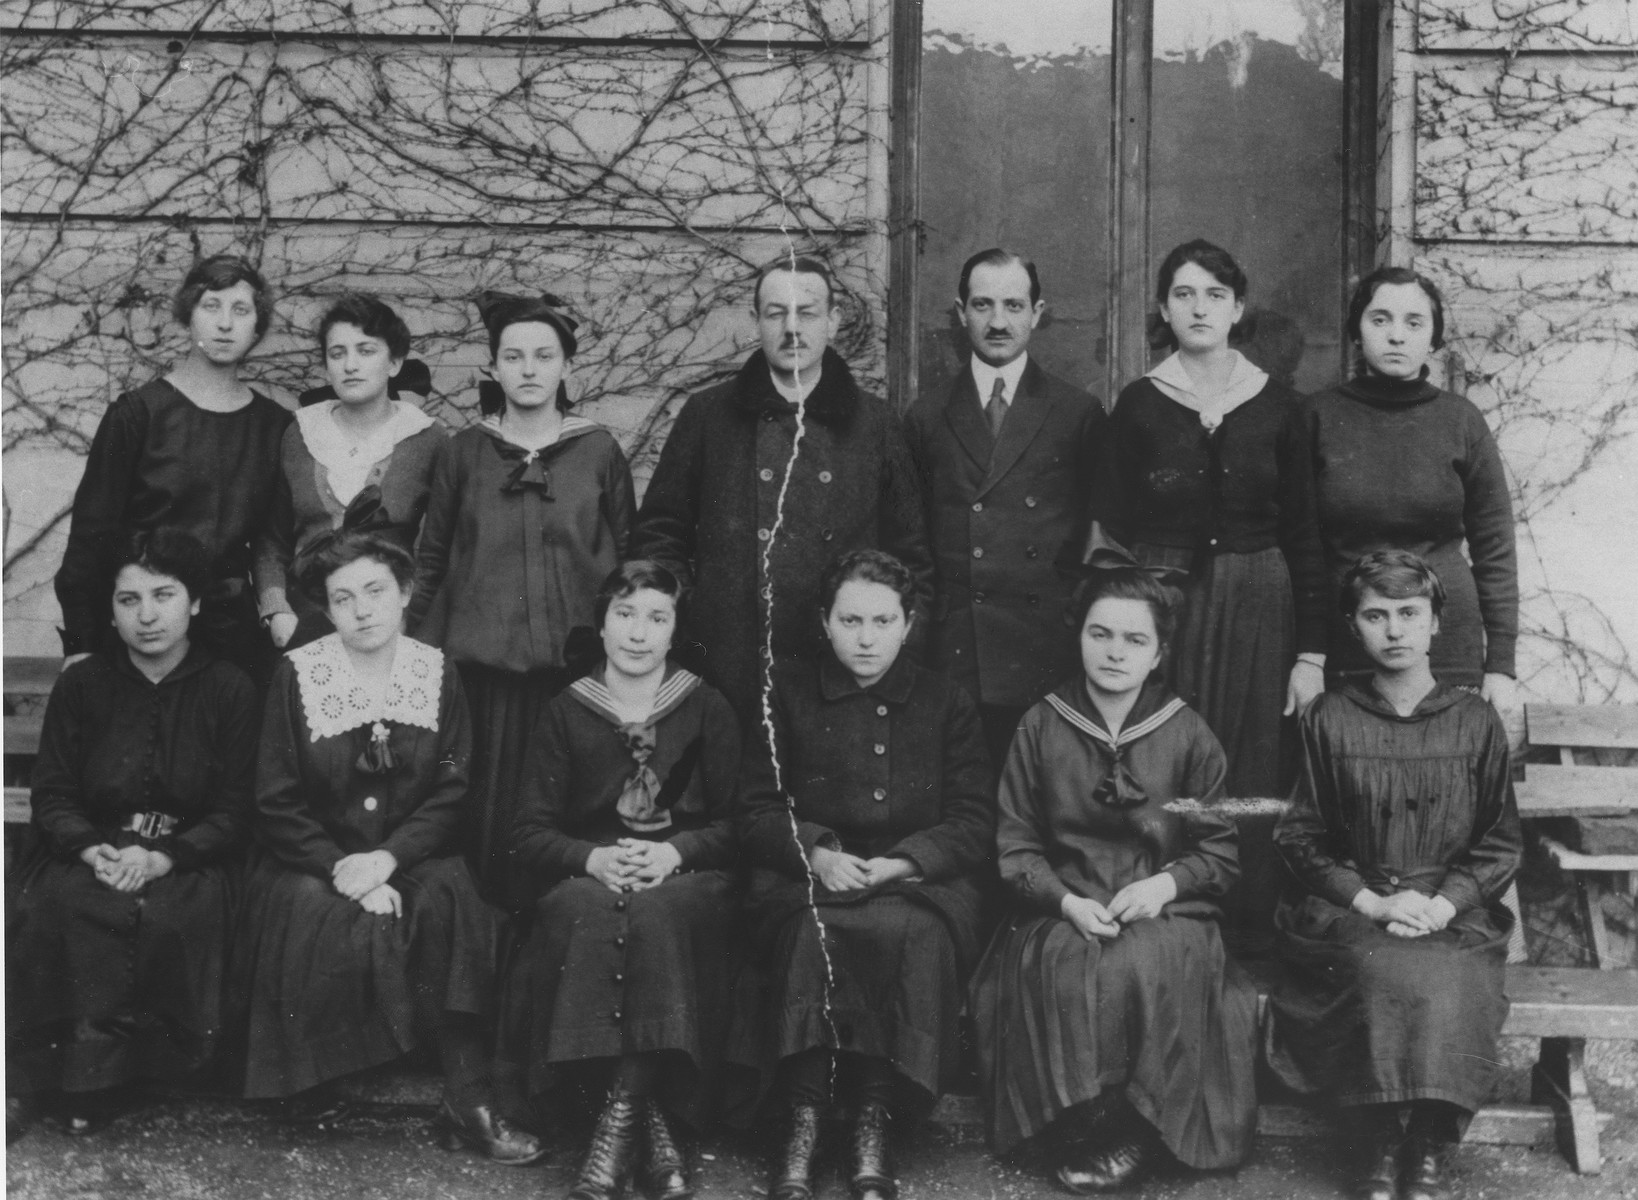 Friedricke Gottfried with her graduating class at the Deutsche Lyceum in Czernowitz.  Among those pictured are Hansi Lifschitz (front row, left); Irma Last (front row, second from the right); Professor Theodor Kern (top row, center); and Friedricke Gottfried (top row, second from the left).